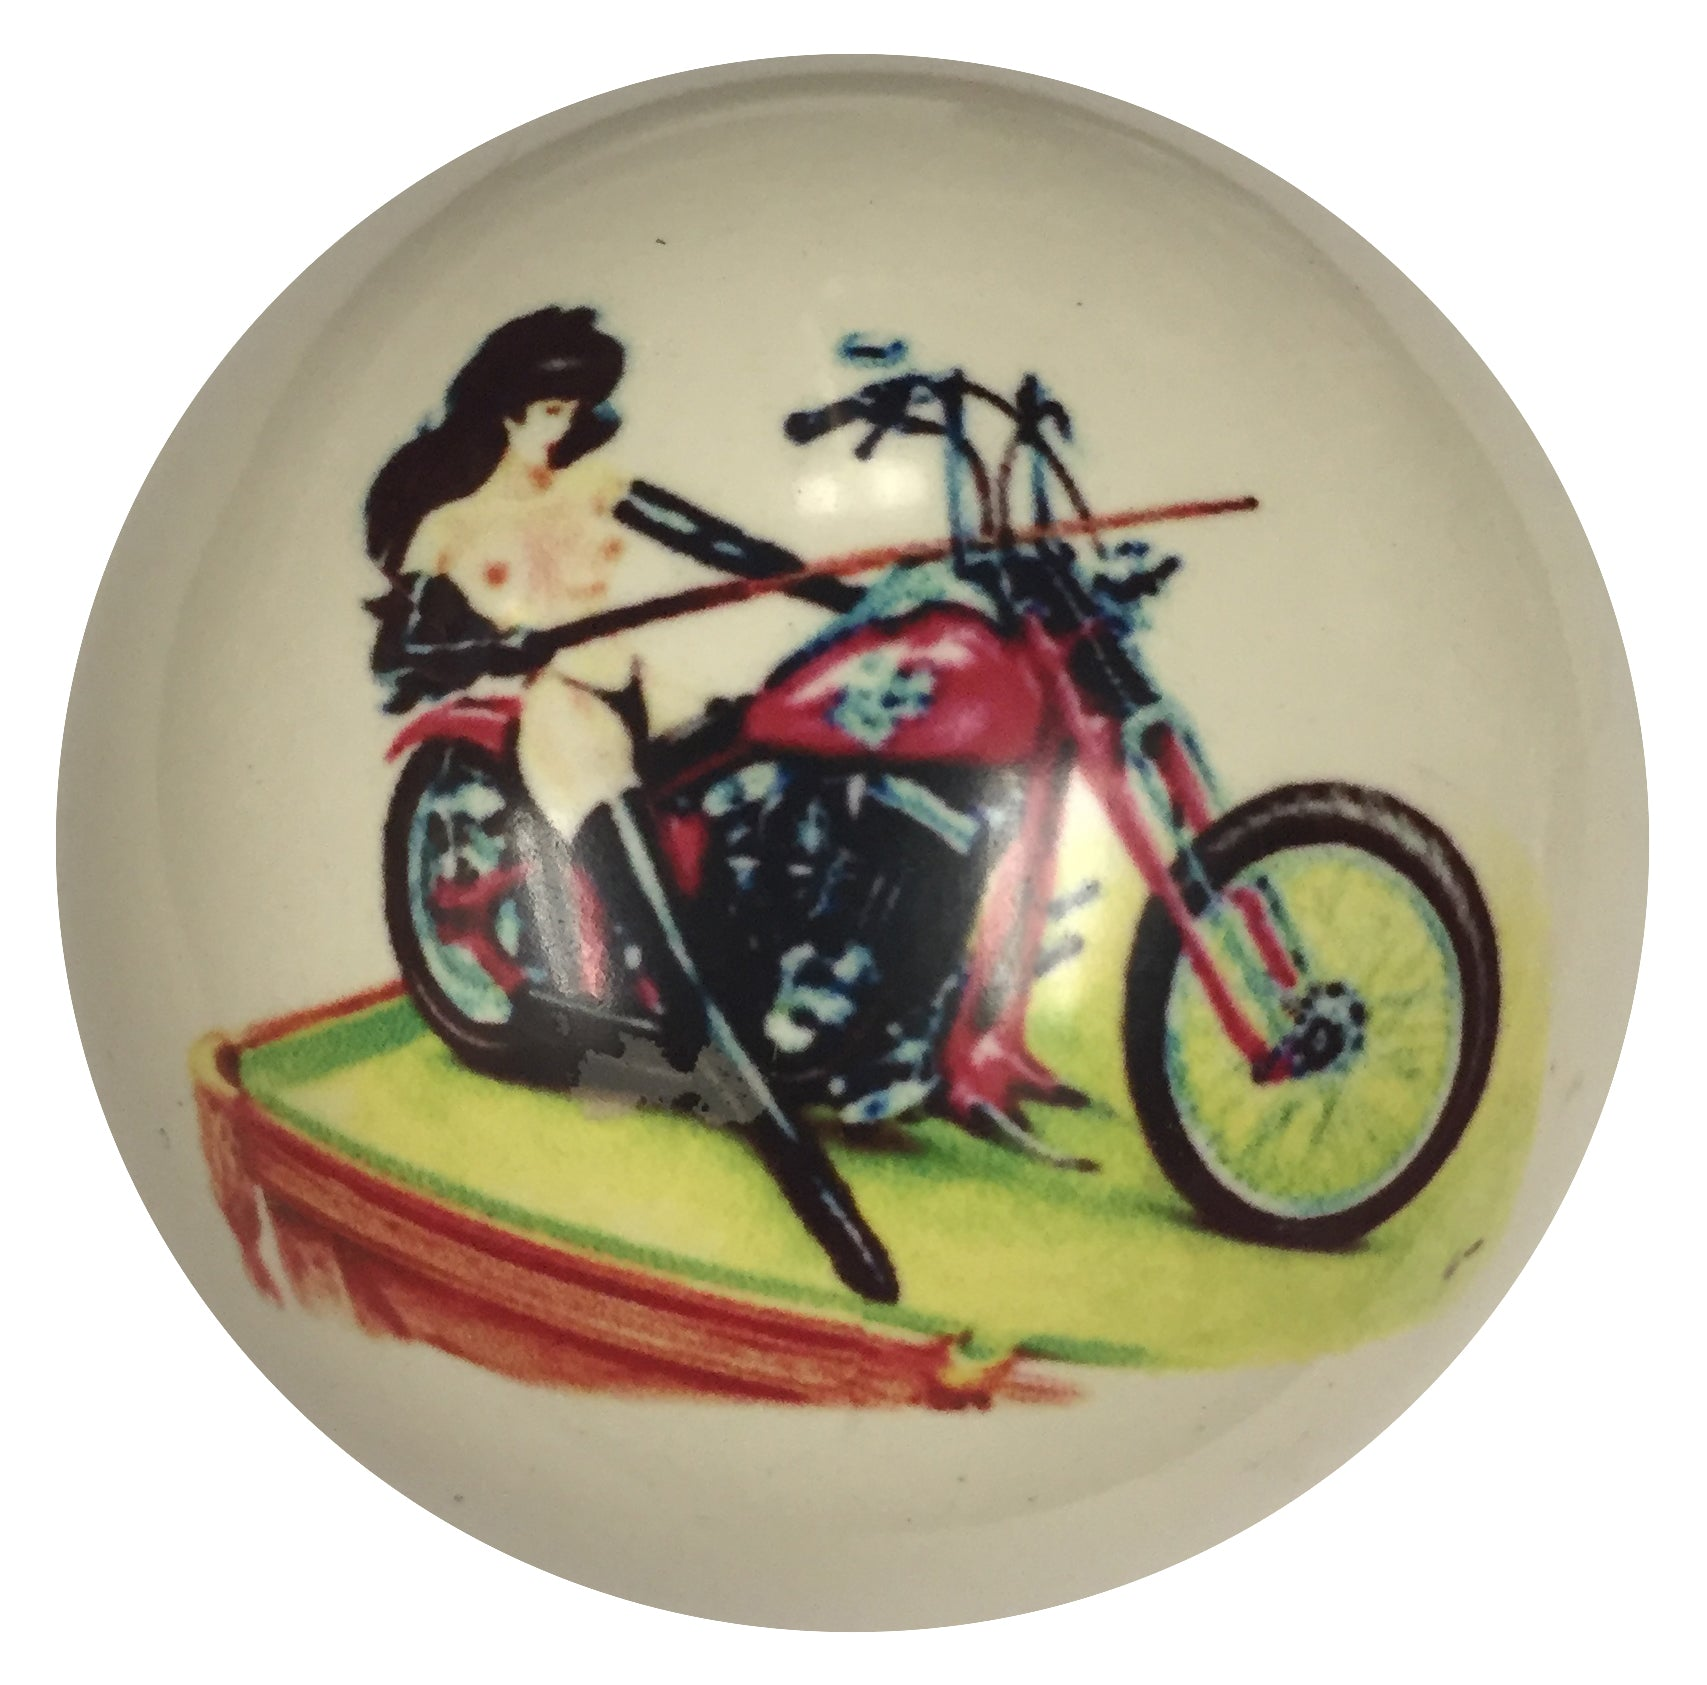 Pin-Up Girl with Table Designer Cue Ball for Pool Players Custom by D/&L Billiards